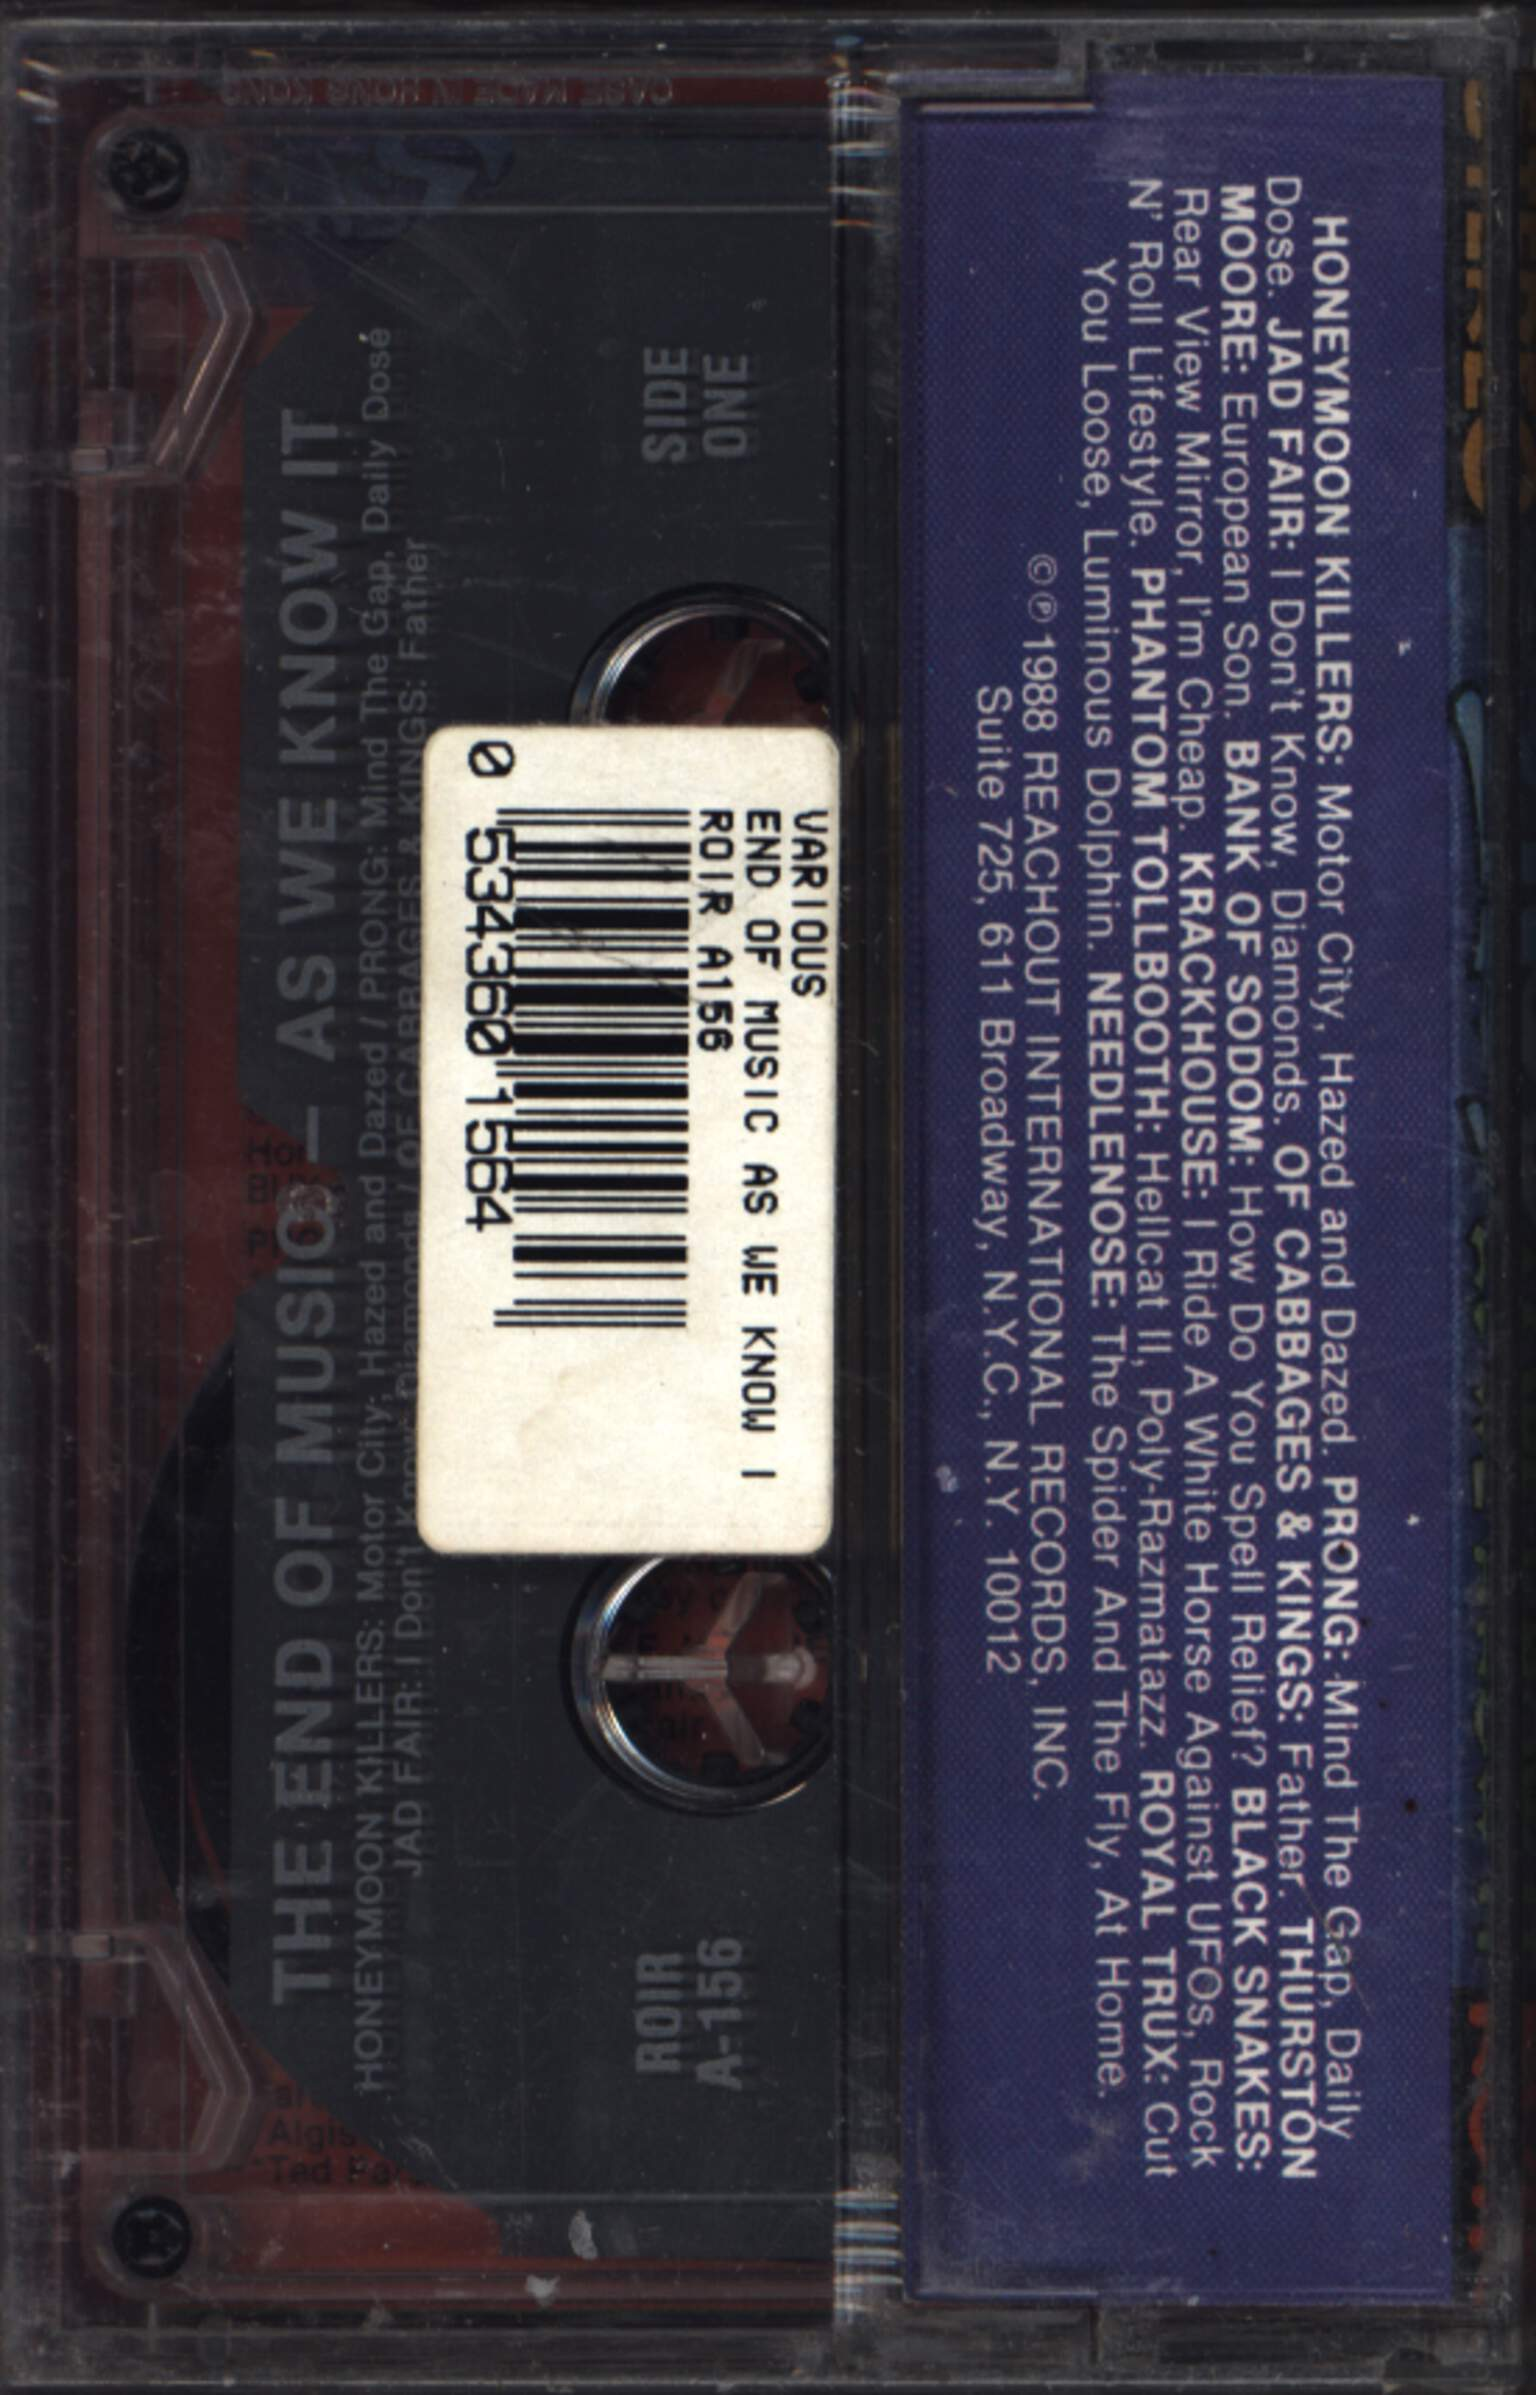 Various: The End Of Music (As We Know It), Compact Cassette